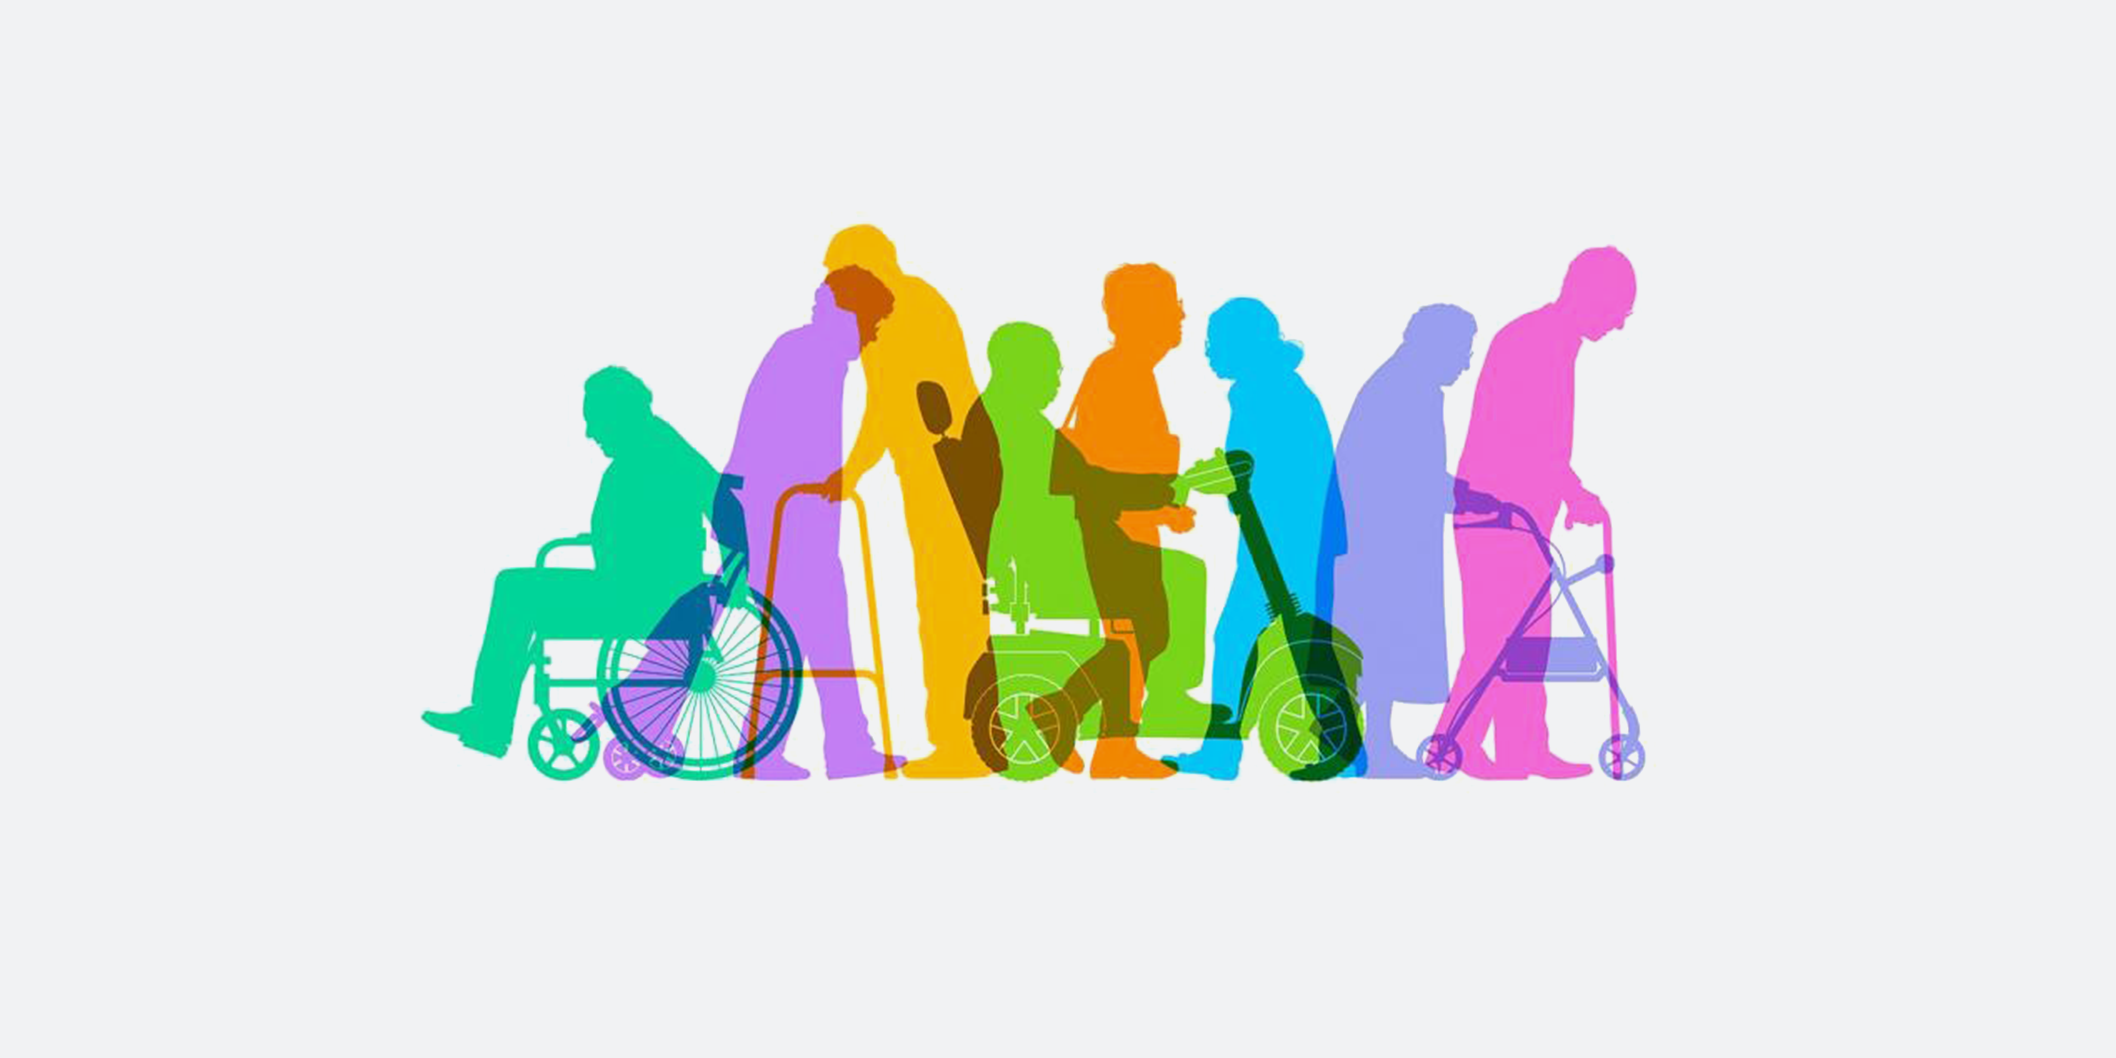 People with disabilities - art illustration. Photo credit - smartboy10/iStock